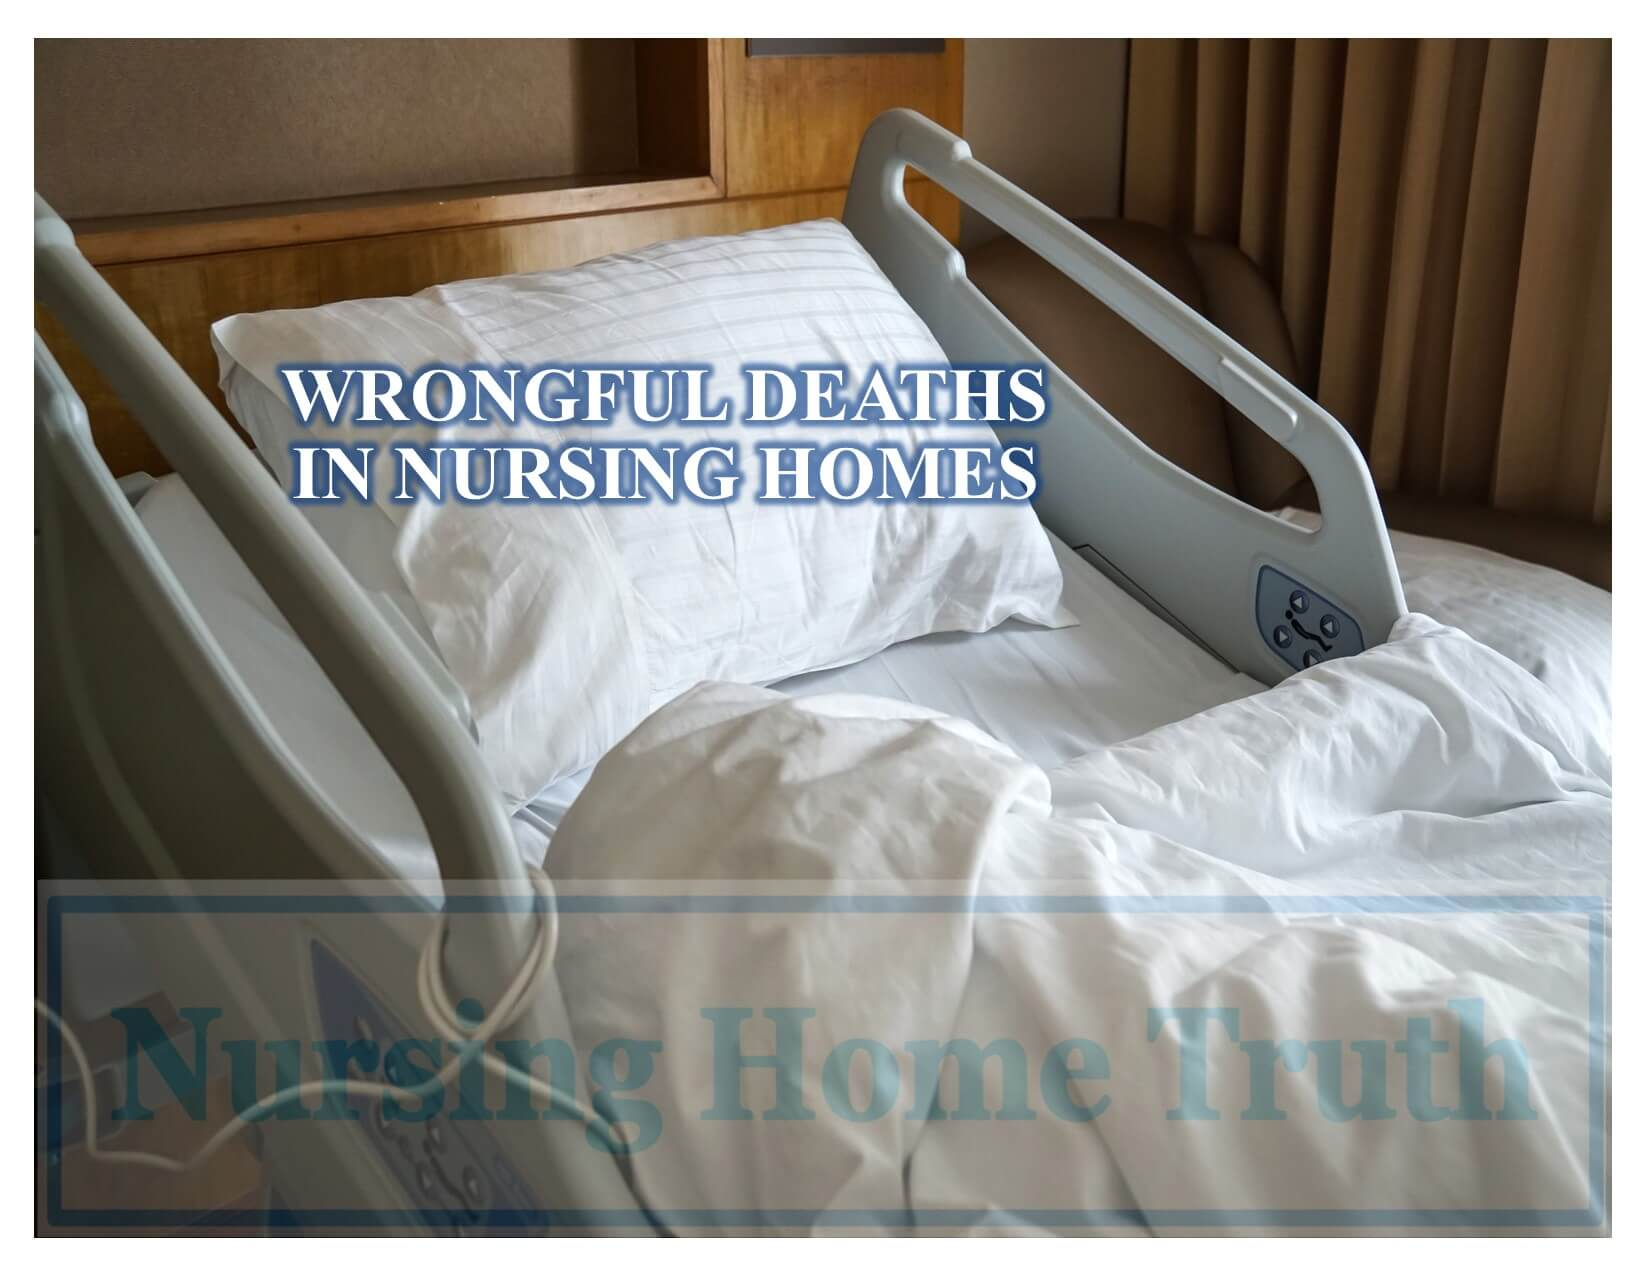 Settlements for Nursing Home Wrongful Deaths